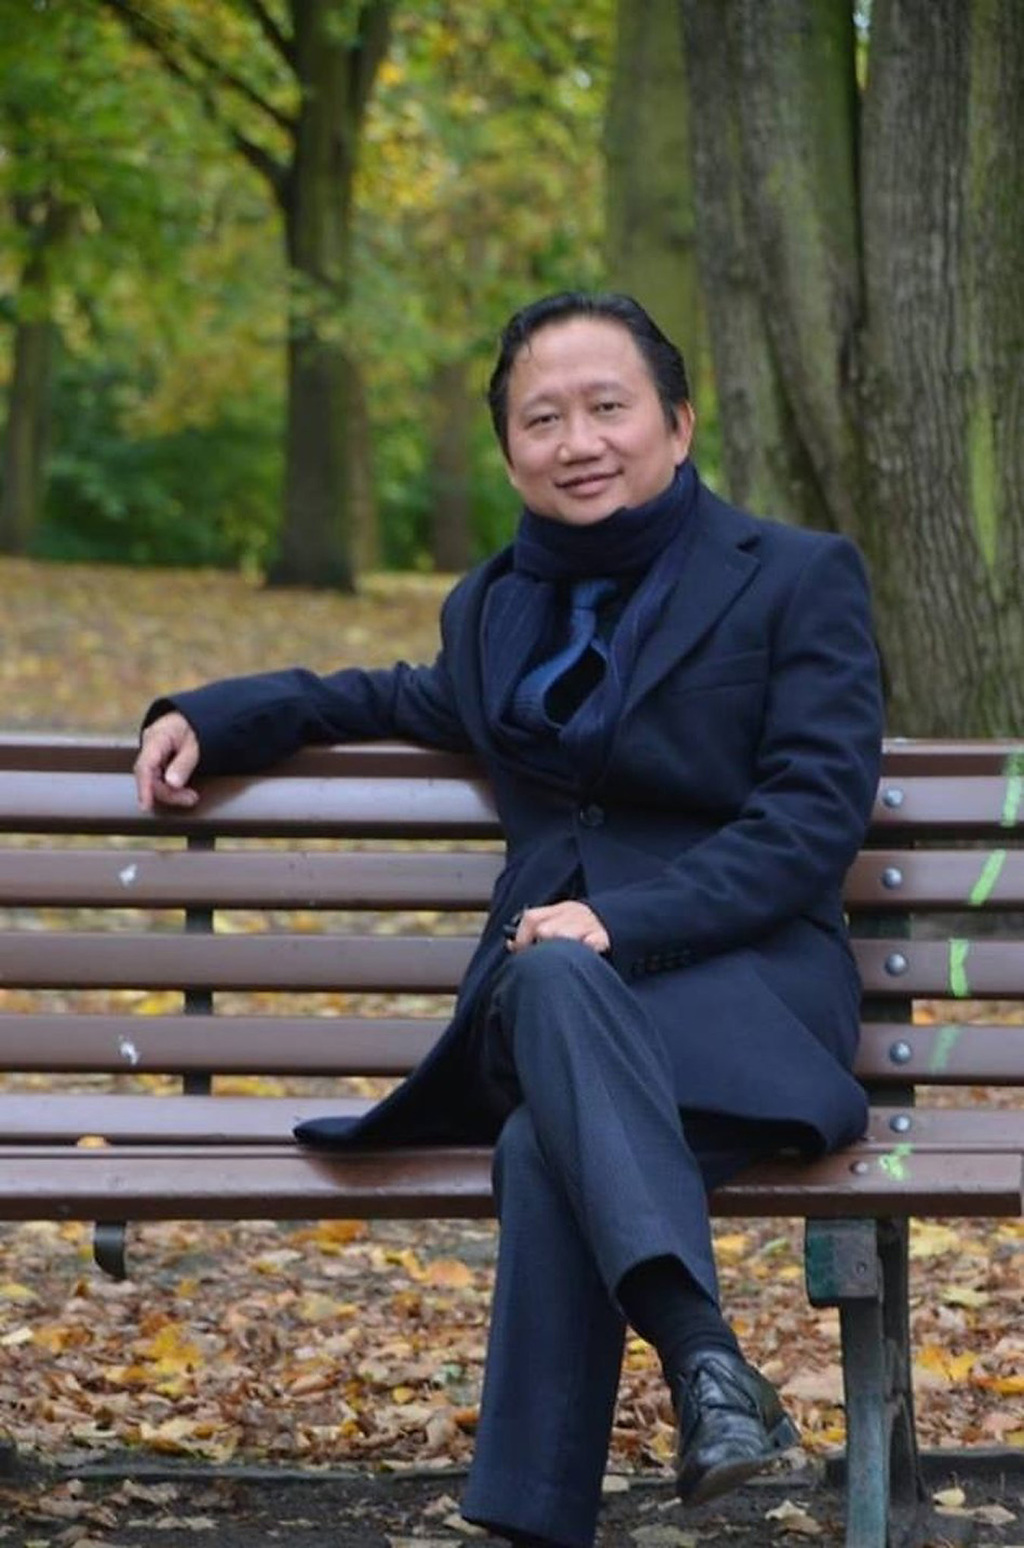 The undated image provided on Aug. 2, 2017 show Trinh Xuan Thanh, a businessman and former functionary of Vietnam's Communist Party sitting on a park ...